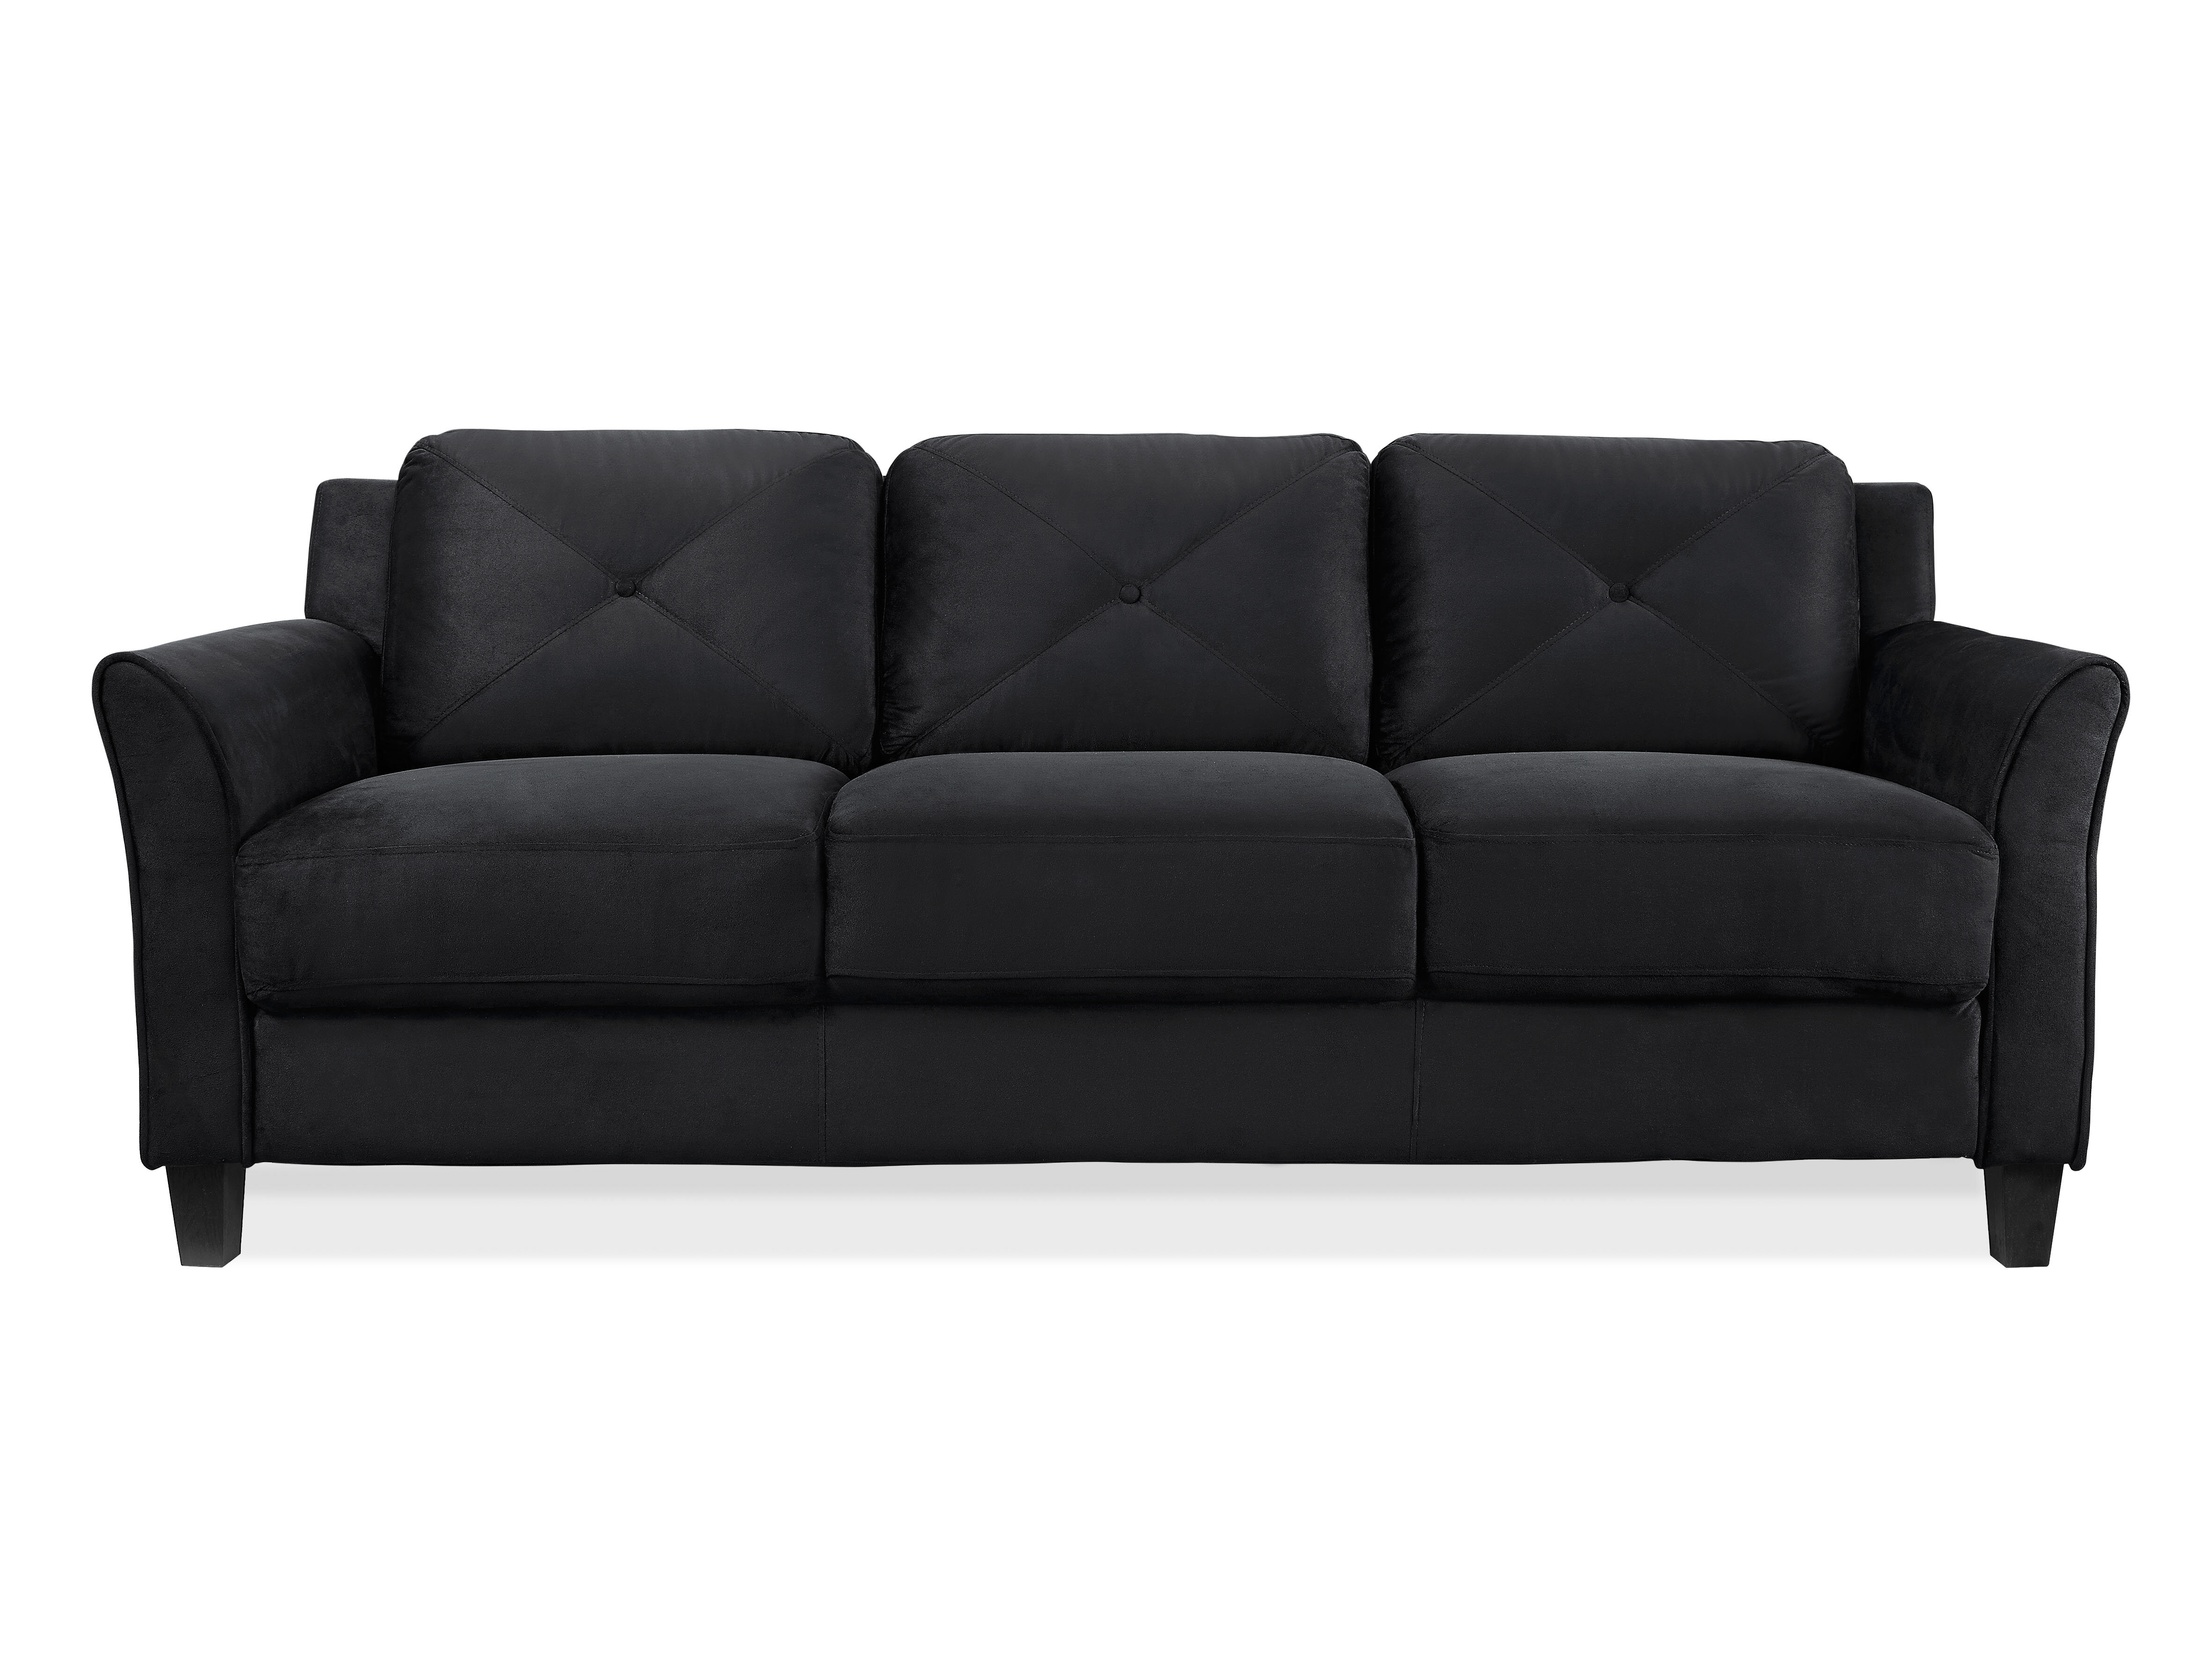 Sofa Furniture